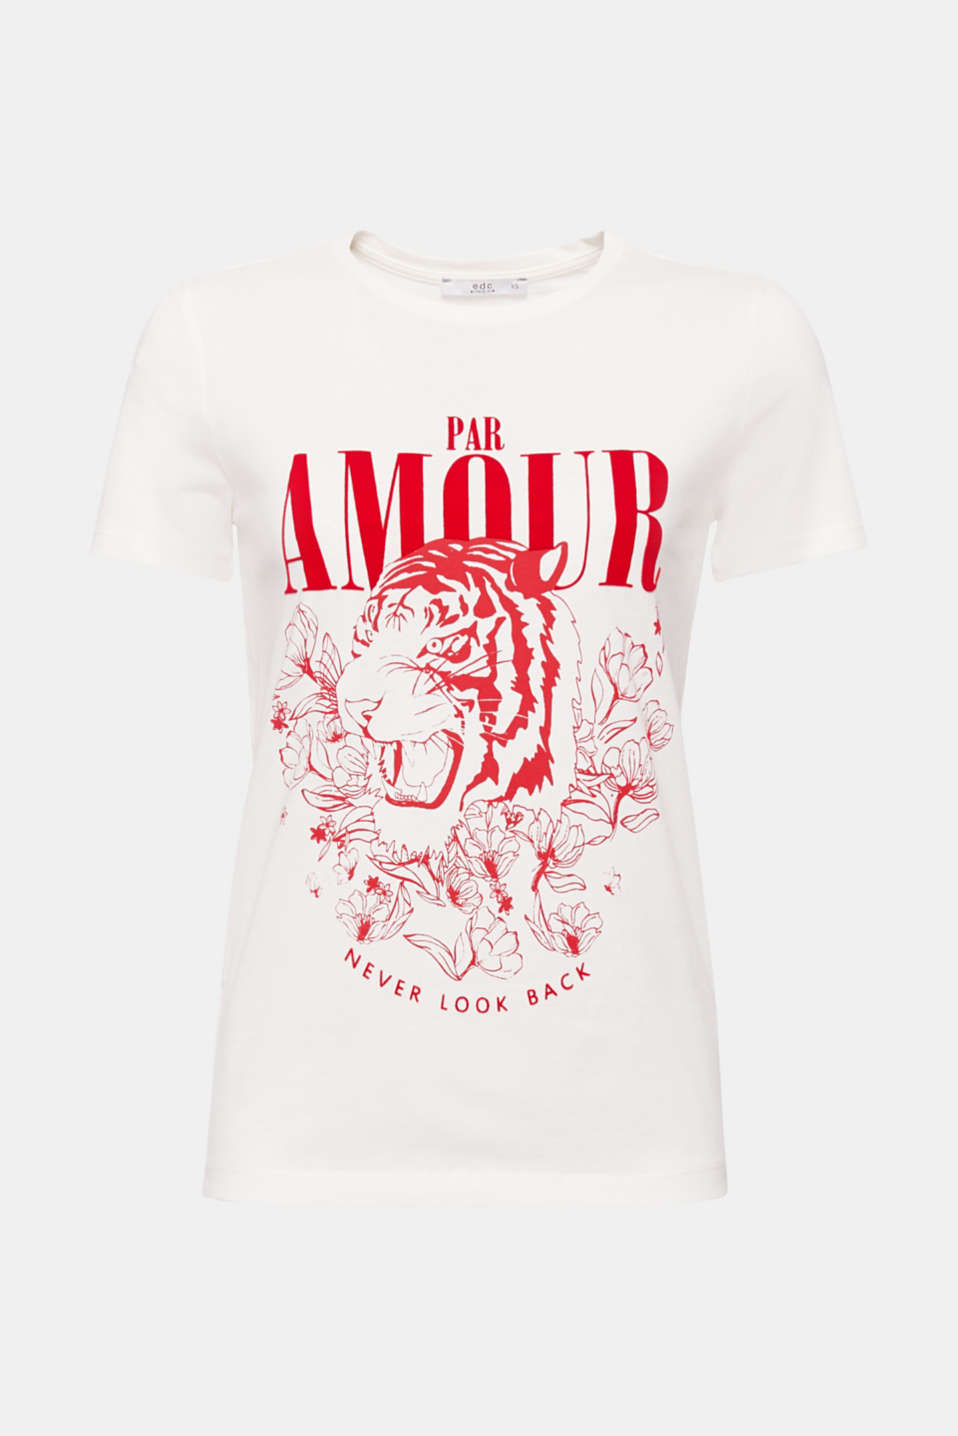 The tiger and love create a striking pair on this printed T-shirt made of 100% cotton.